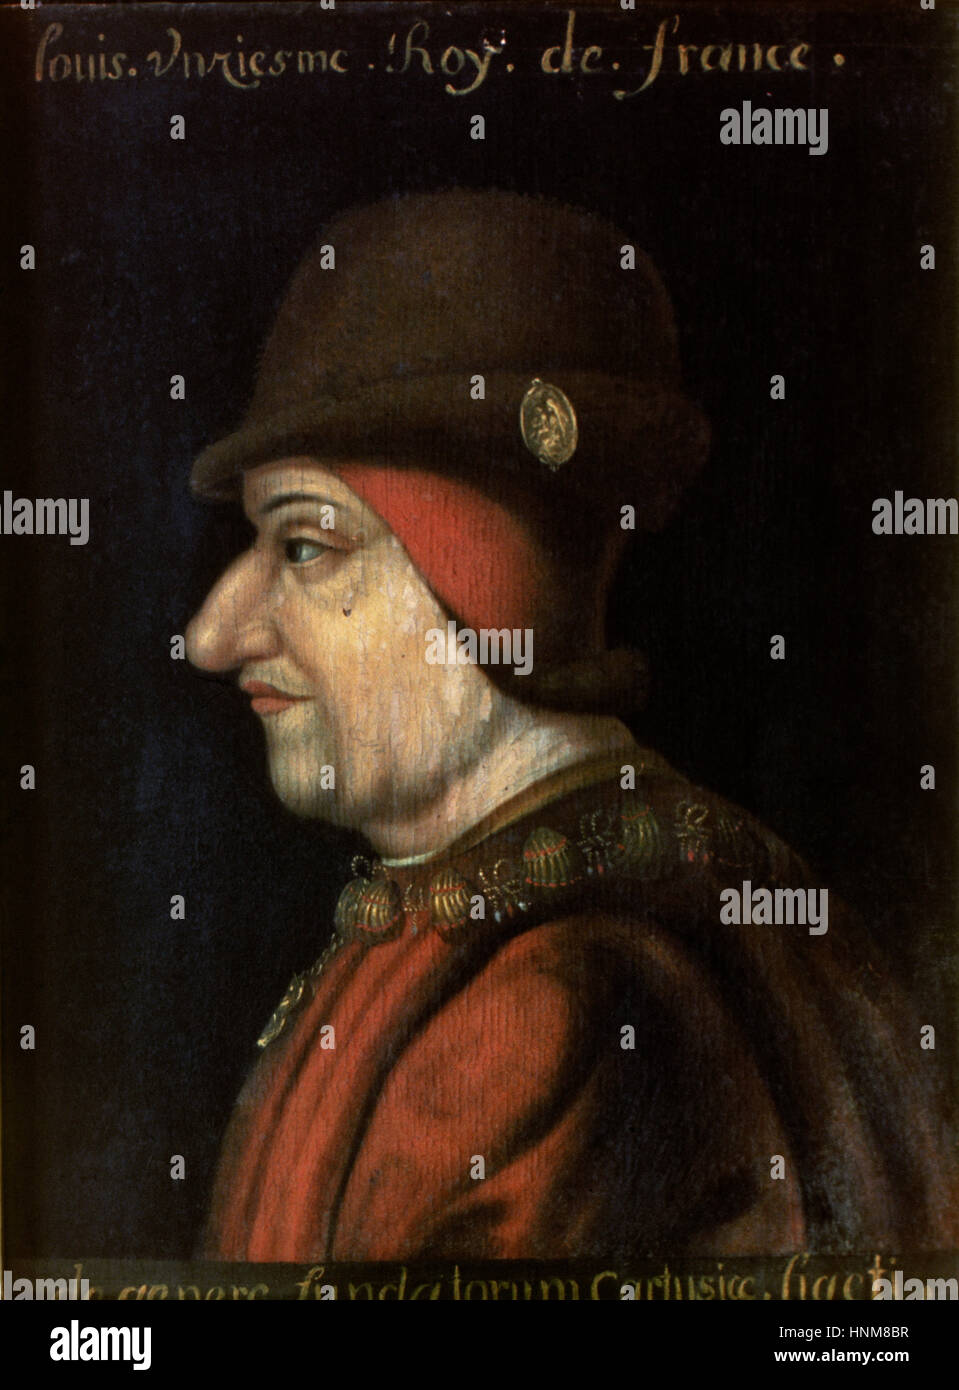 Louis XI of France (1423-1483), The Prudent. House of Valois. Portrait. Anonymous author. - Stock Image